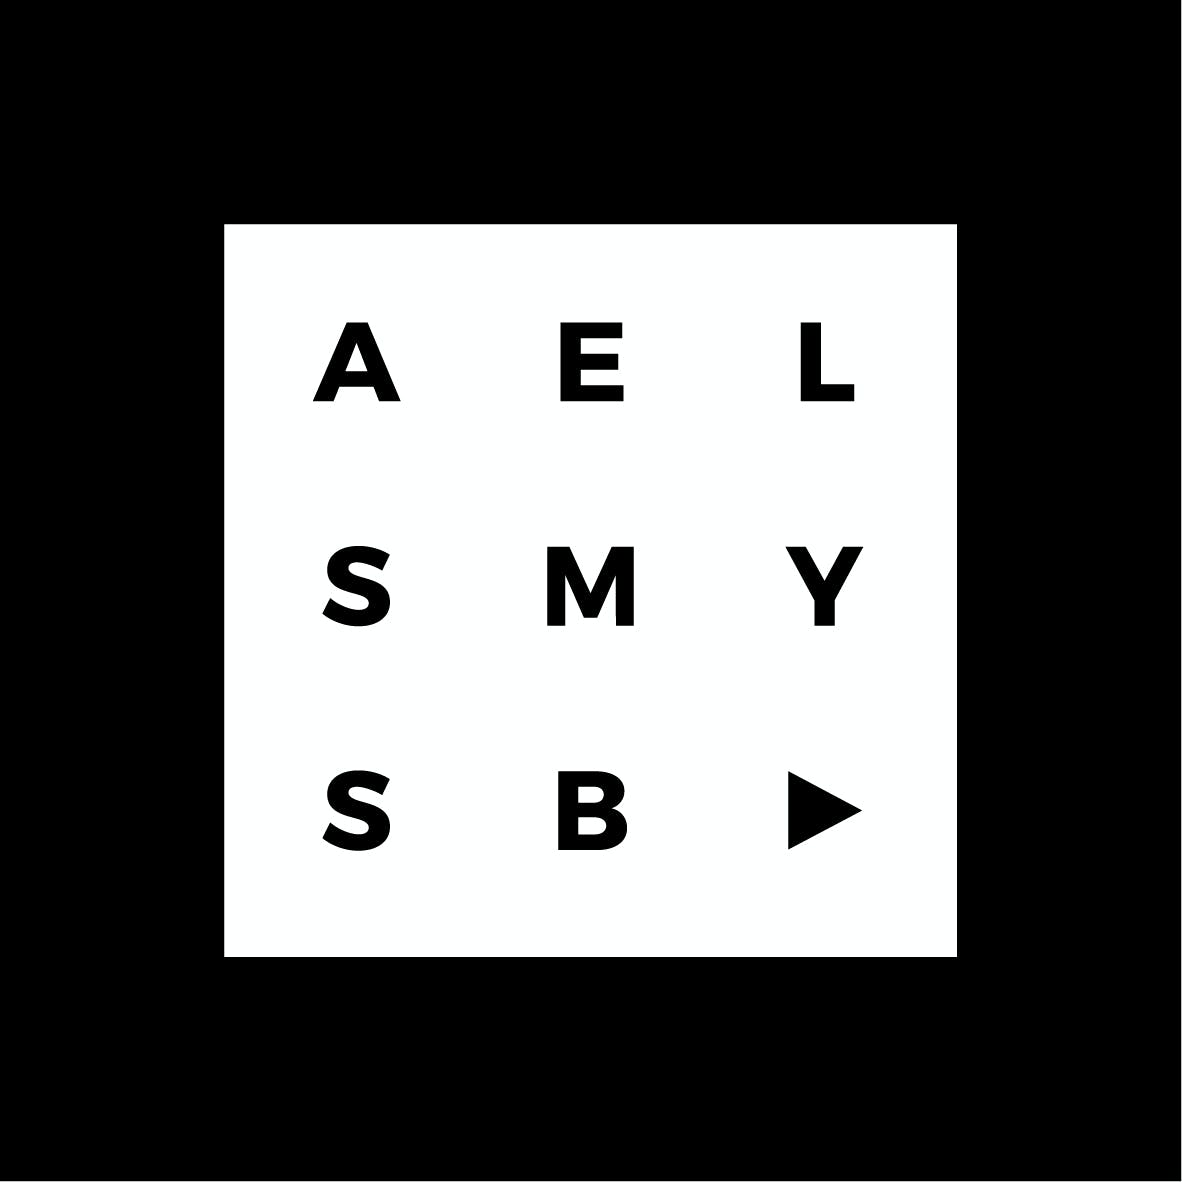 A s s e m b l y launches in Shoreditch